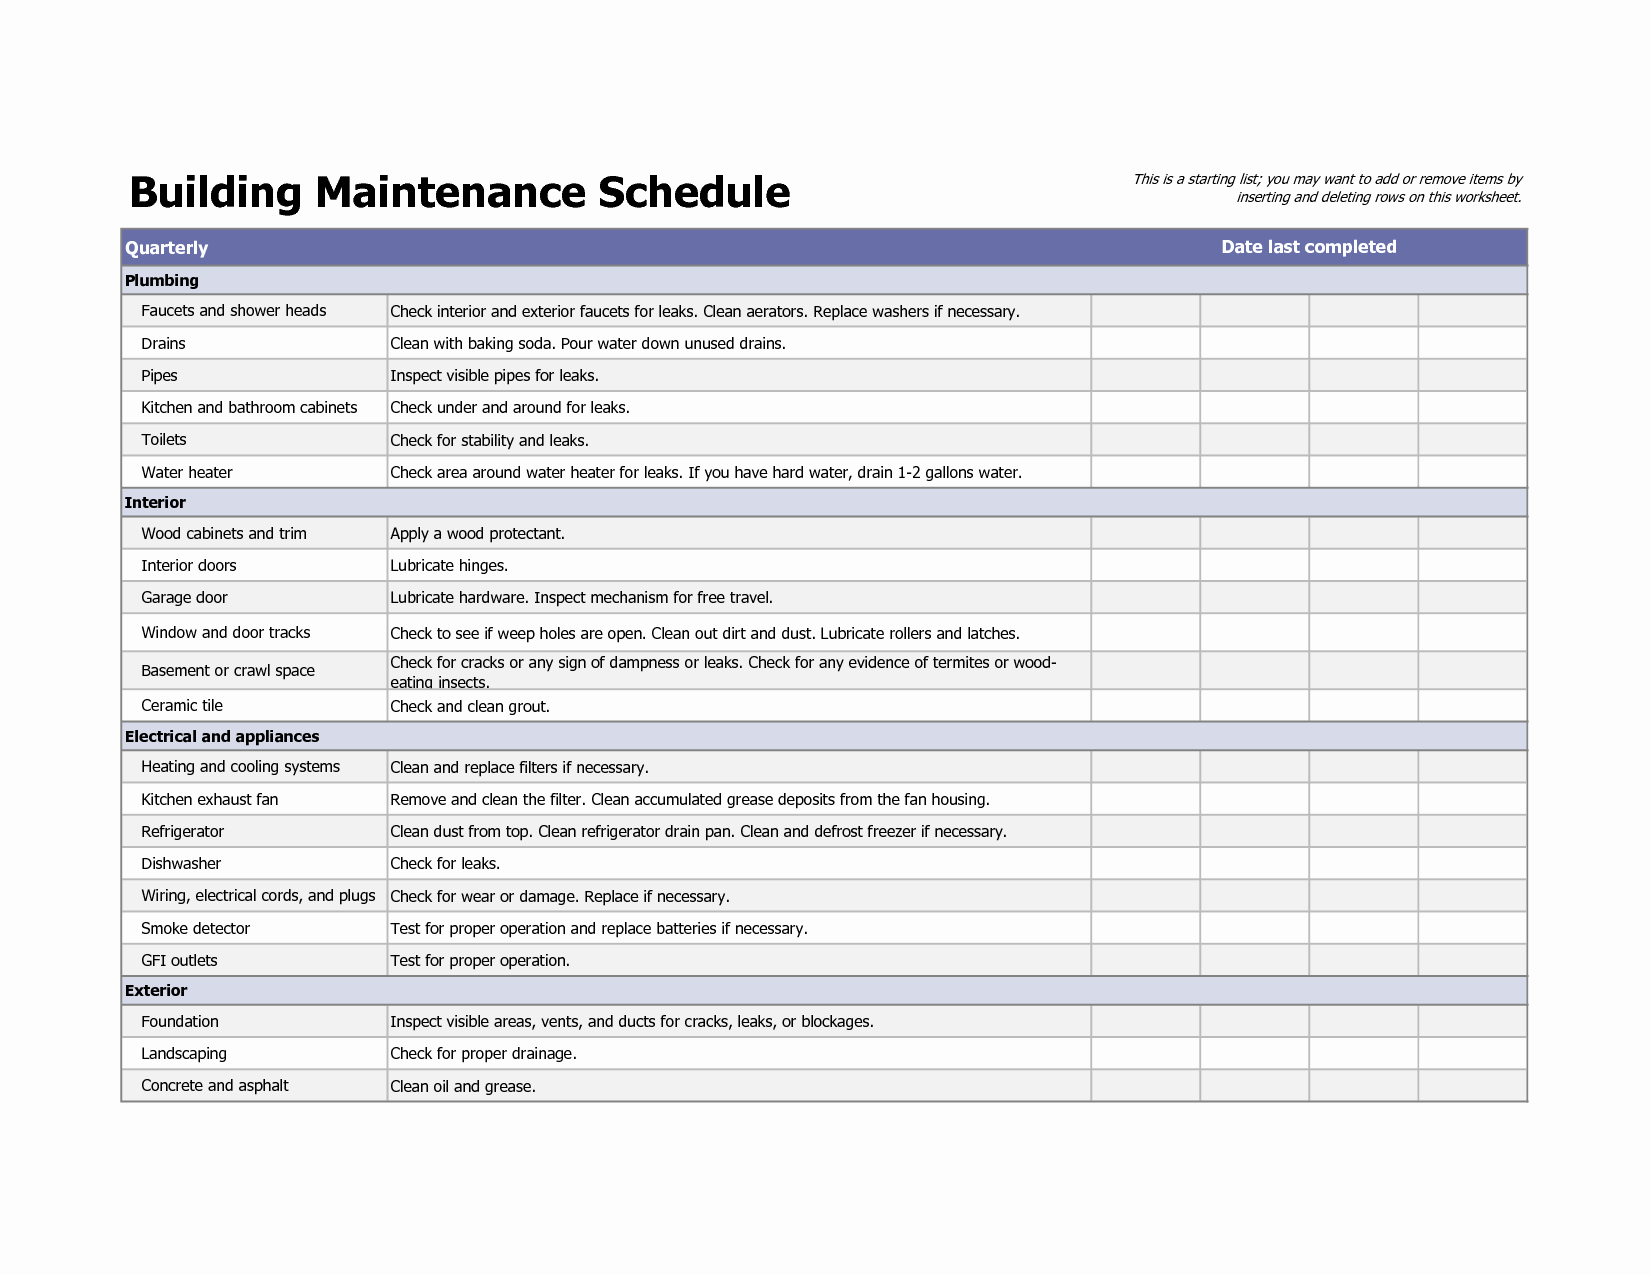 Cleaning Schedule Template Excel Elegant Building Maintenance Schedule Excel Template In 2019